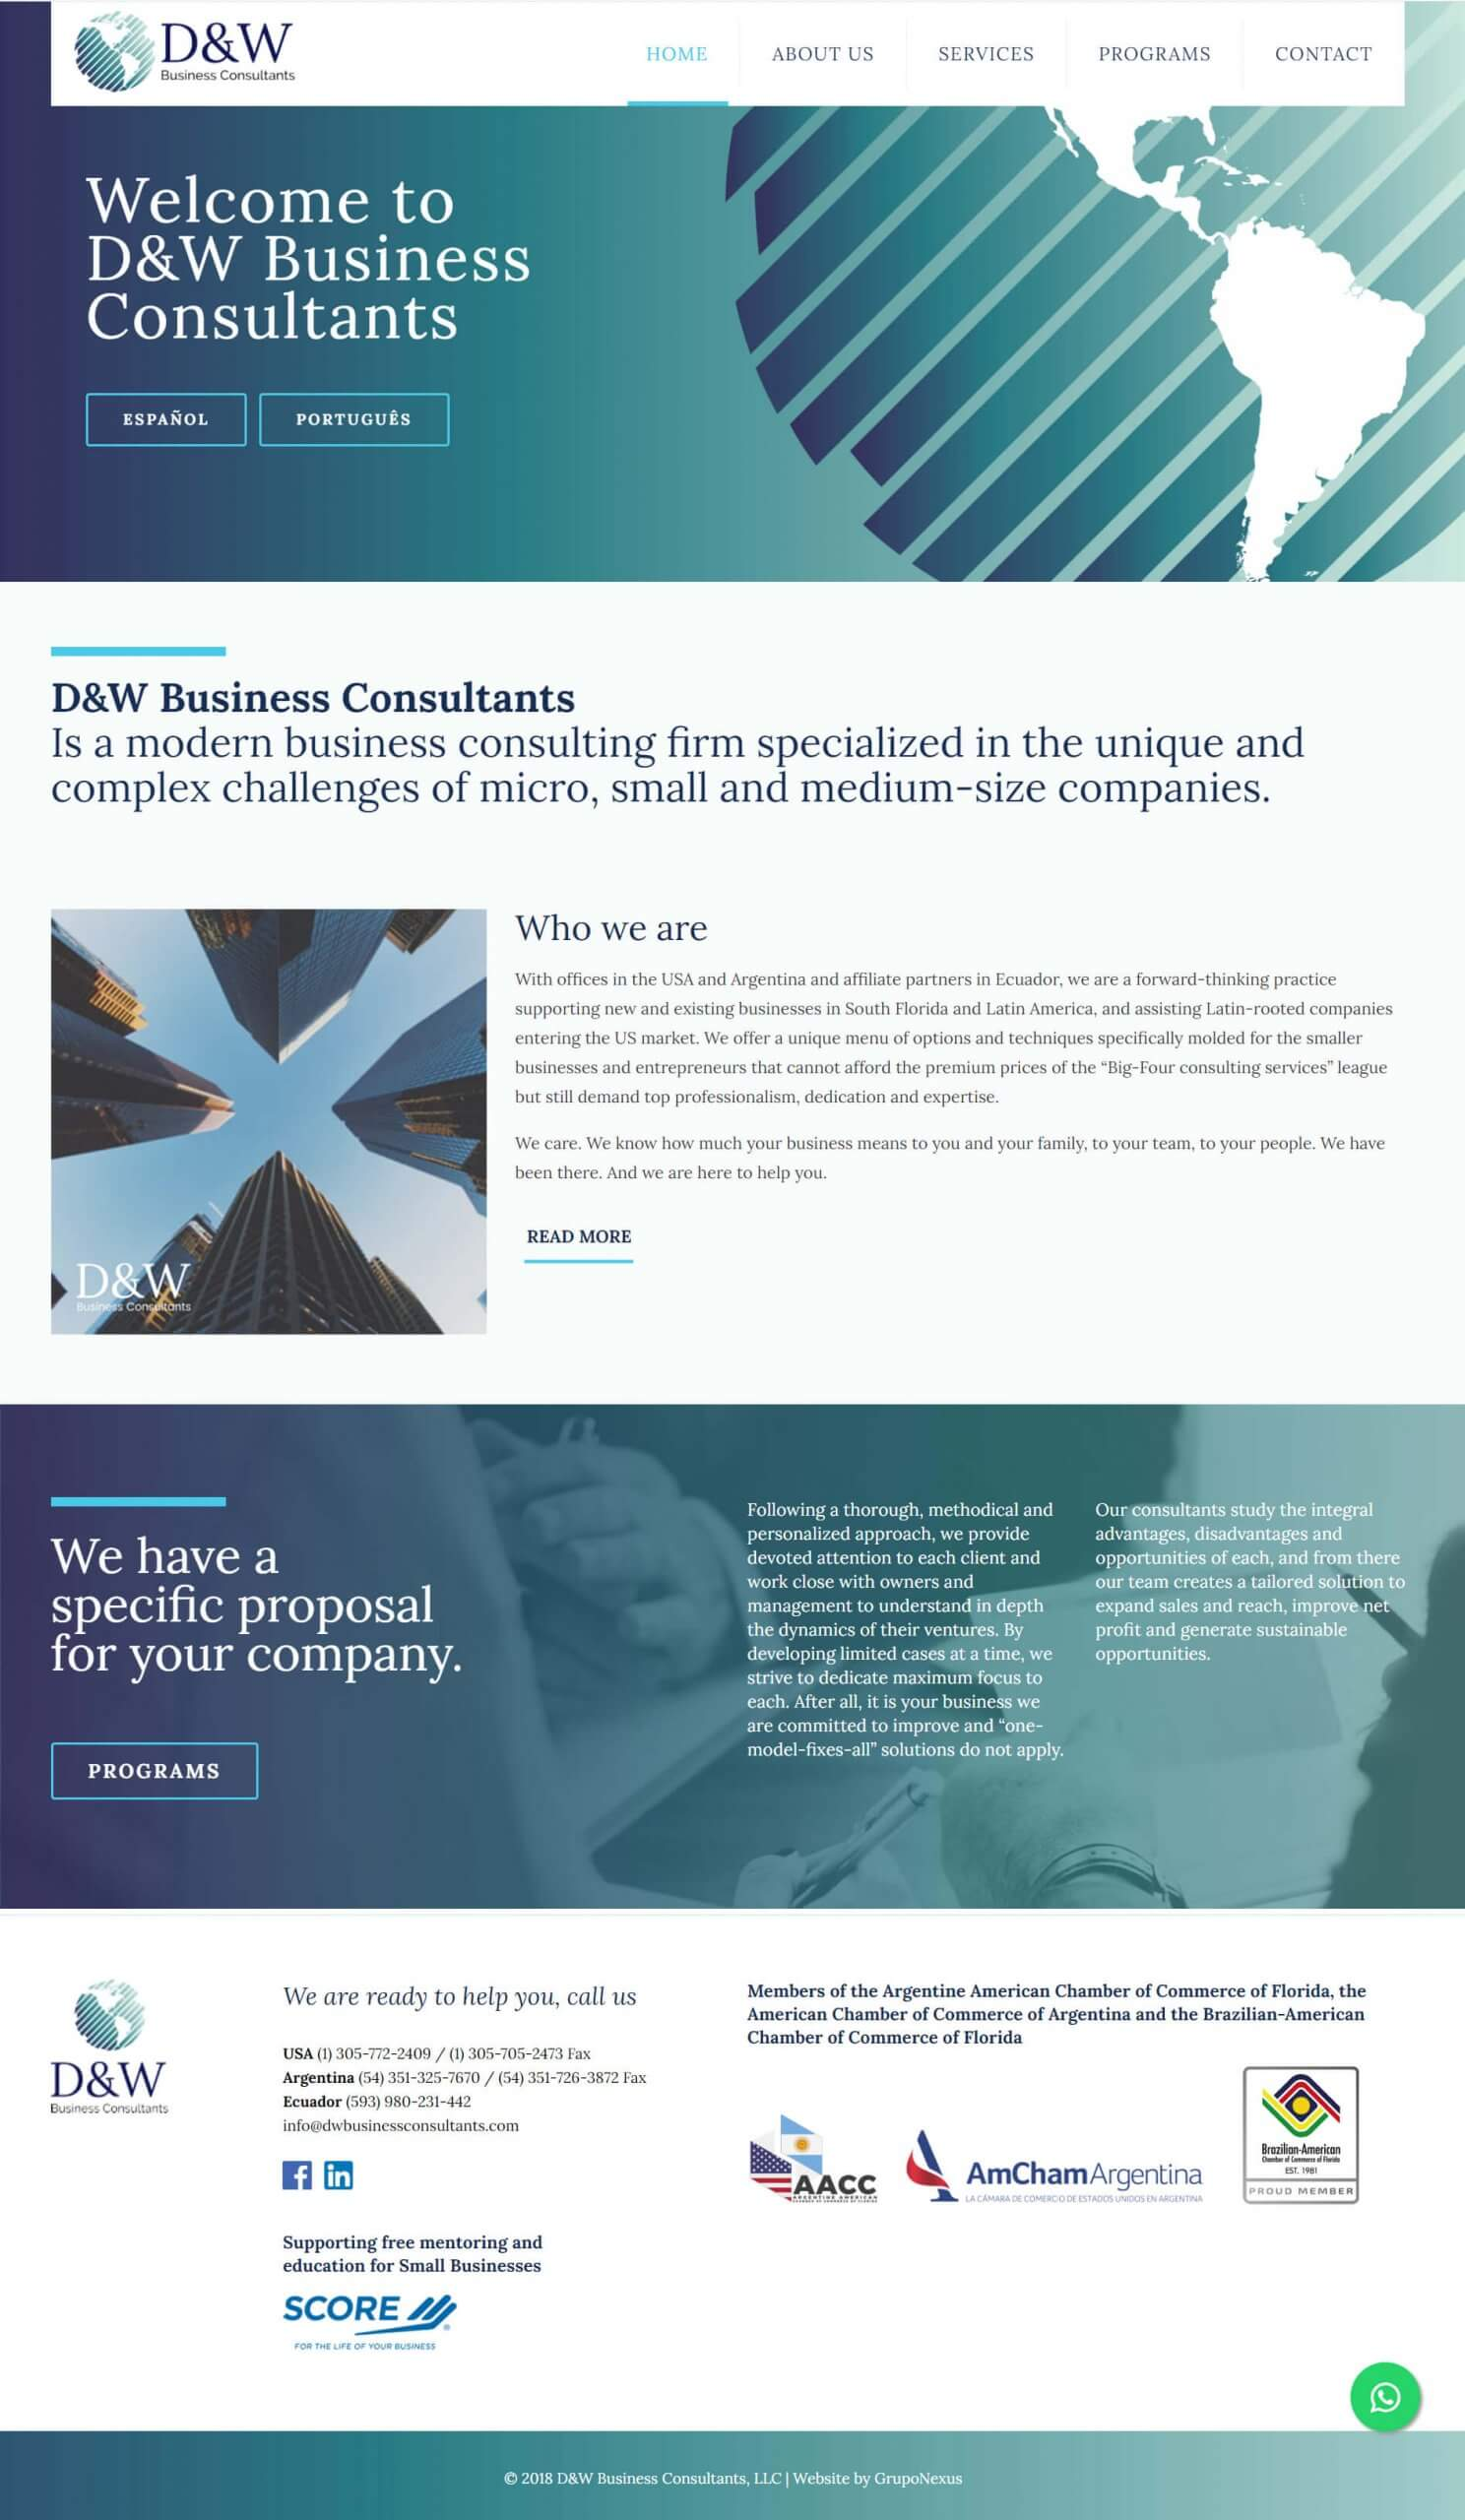 DW Business Consultants